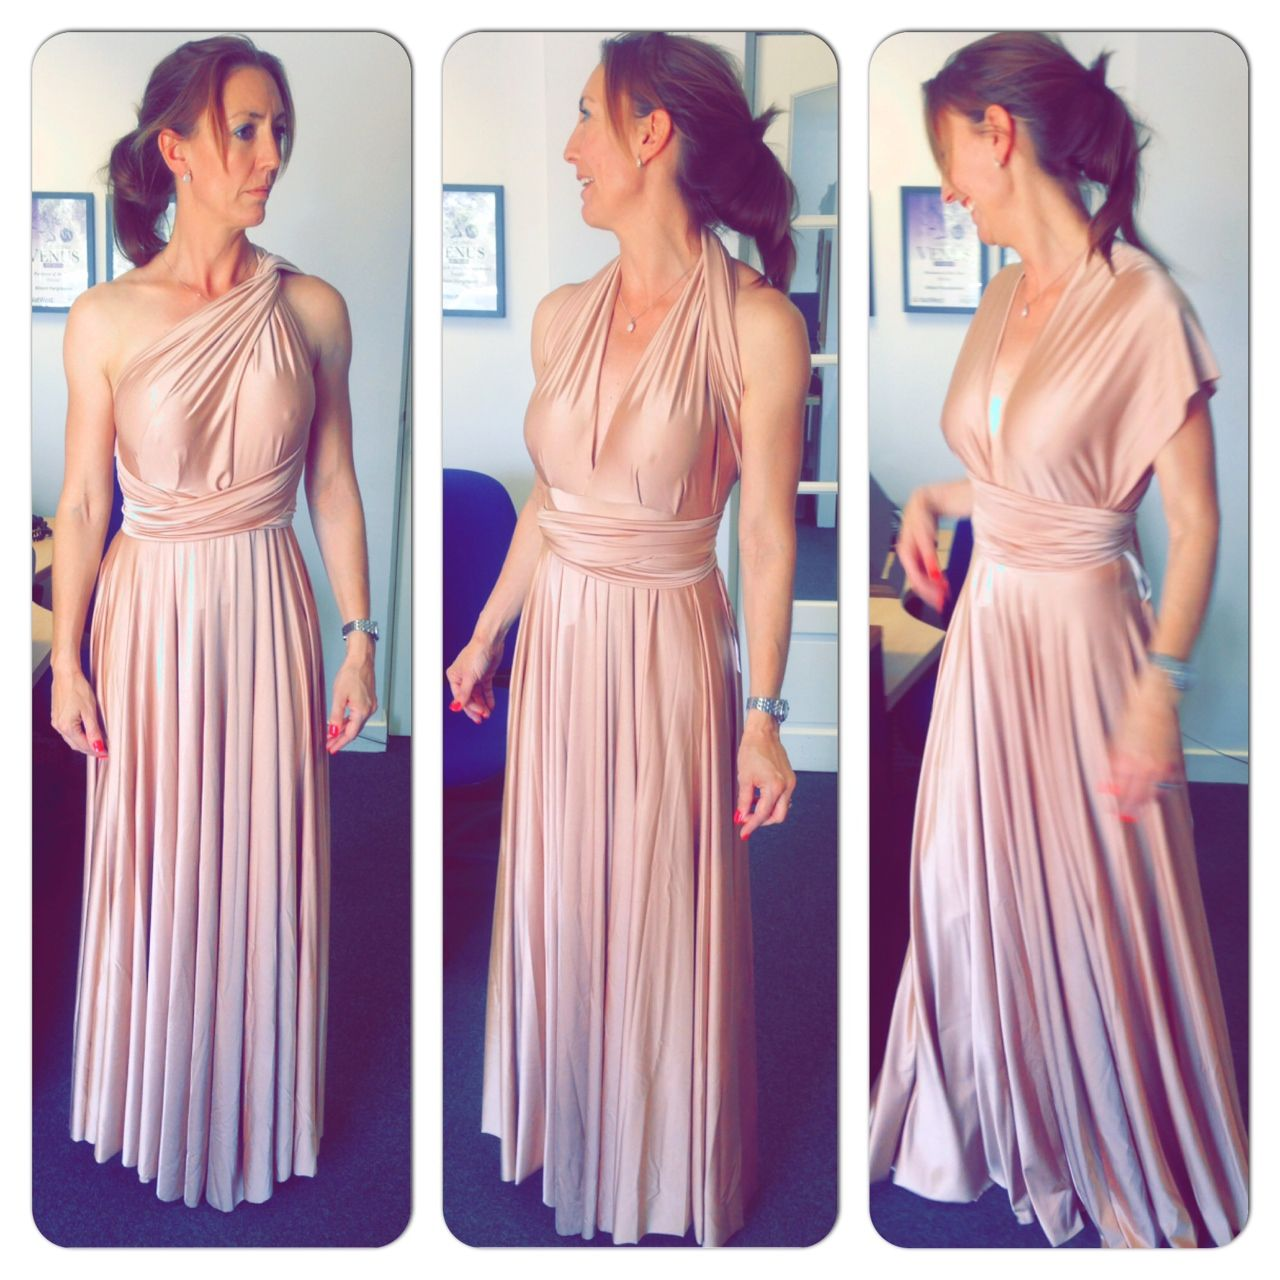 Dawn two birds bridesmaid dress wedding outfit ideas dawn two birds bridesmaid dress ombrellifo Image collections